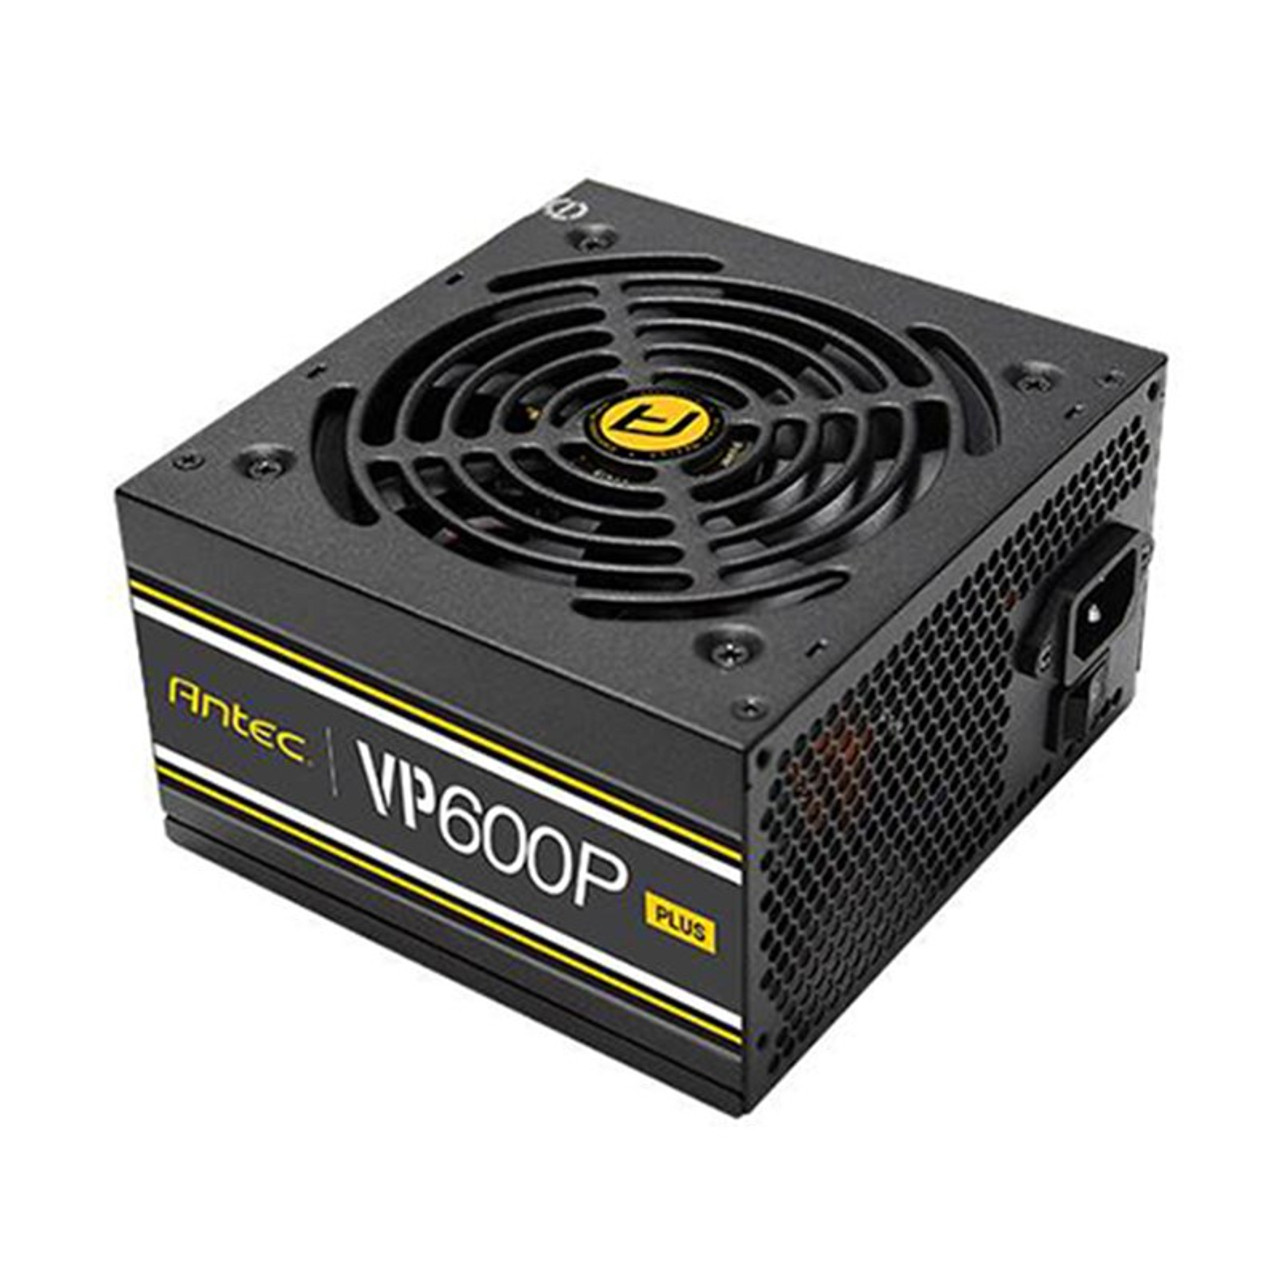 Image for Antec VP600P PLUS 600W 80+ Non-Modular Power Supply CX Computer Superstore